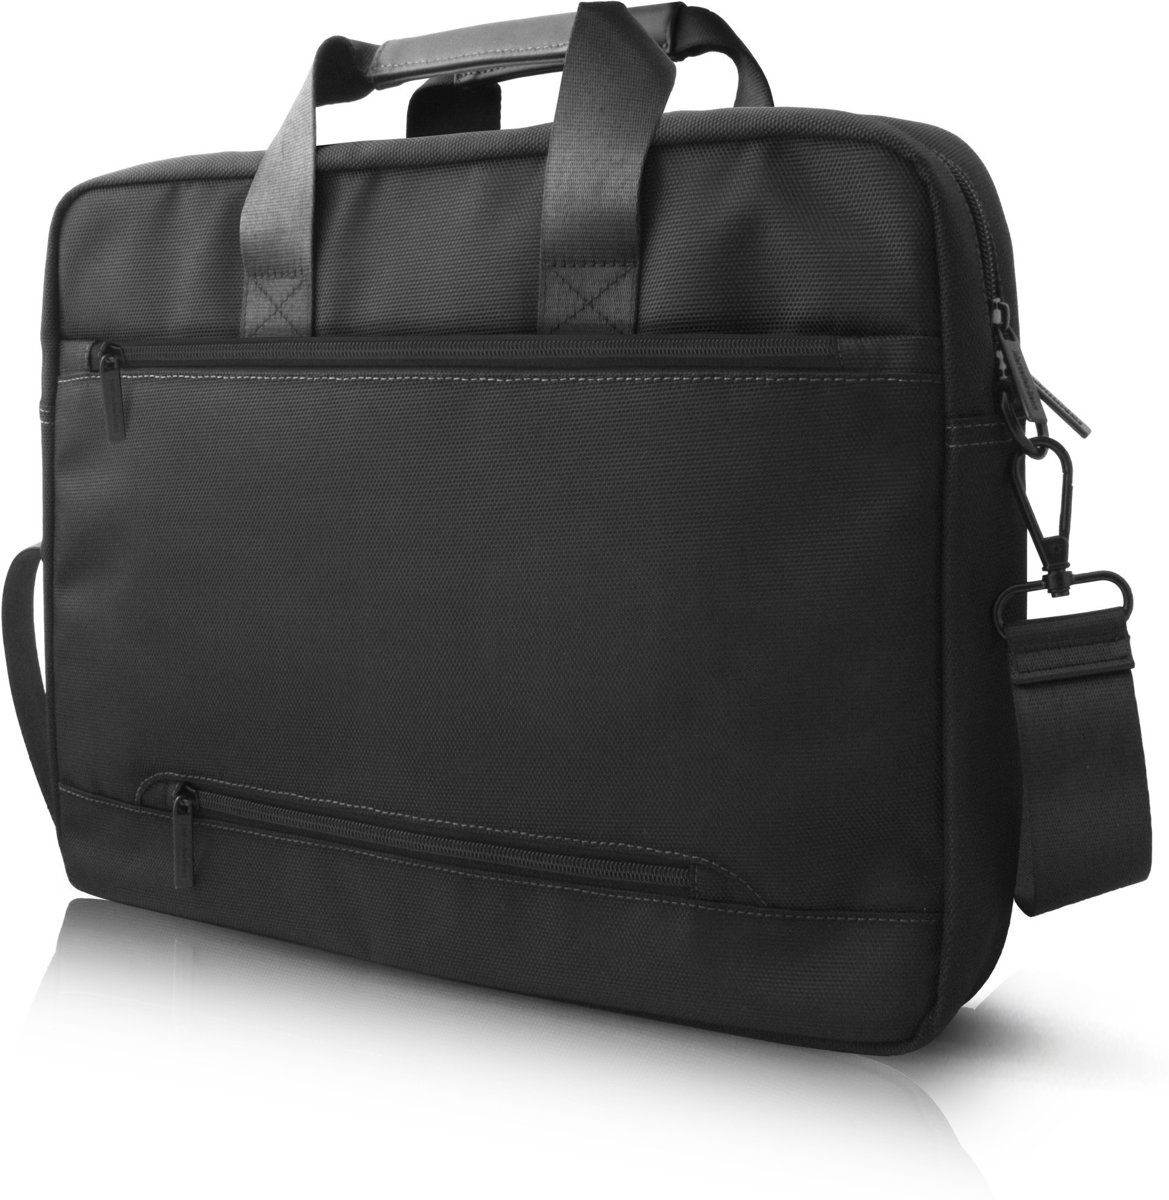 Laptoptas 15 inch Pattern III Mercedes-Benz Universeel  Zwart - Carry Bag - Kunstleer